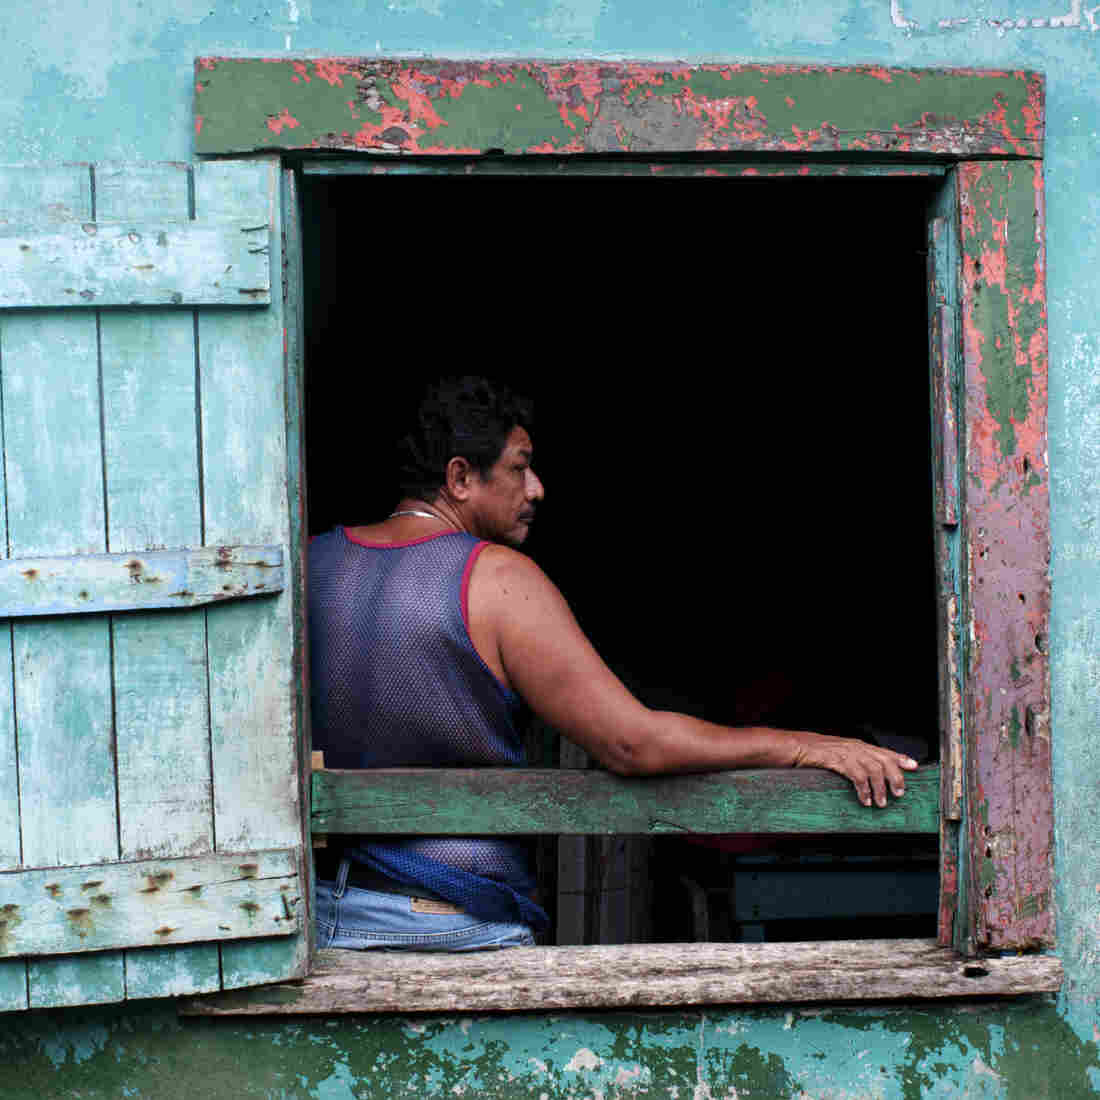 Bluefields sits along Nicaragua's Caribbean Coast. It's a place where six in 10 people live in extreme poverty.